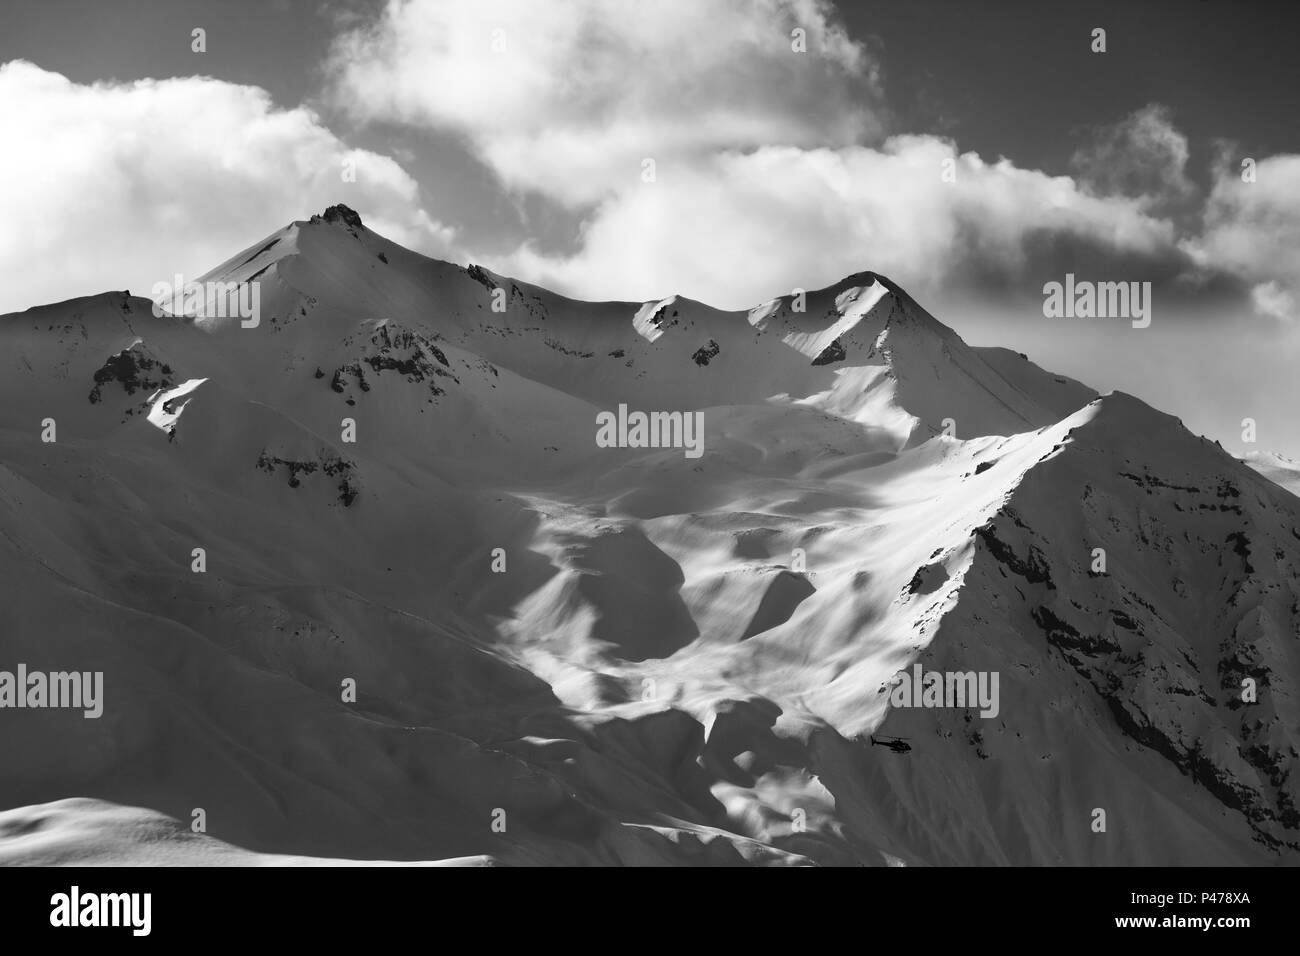 Black and white off piste slope for heliskiing in evening. Region Gudauri, Caucasus Mountains, Georgia in winter. - Stock Image